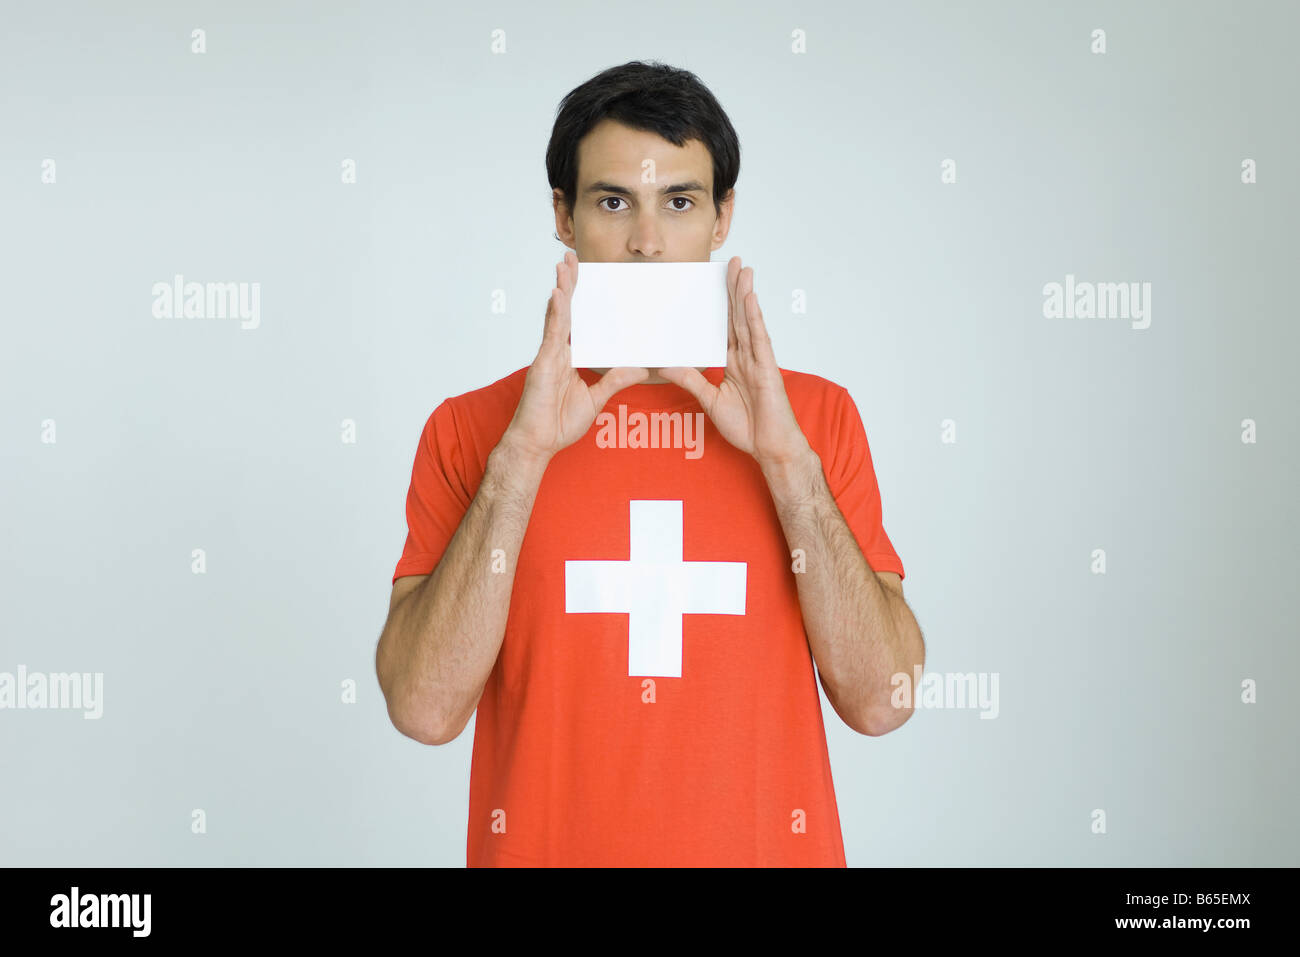 Man wearing Swiss flag tee-shirt, holding blank card in front of mouth - Stock Image